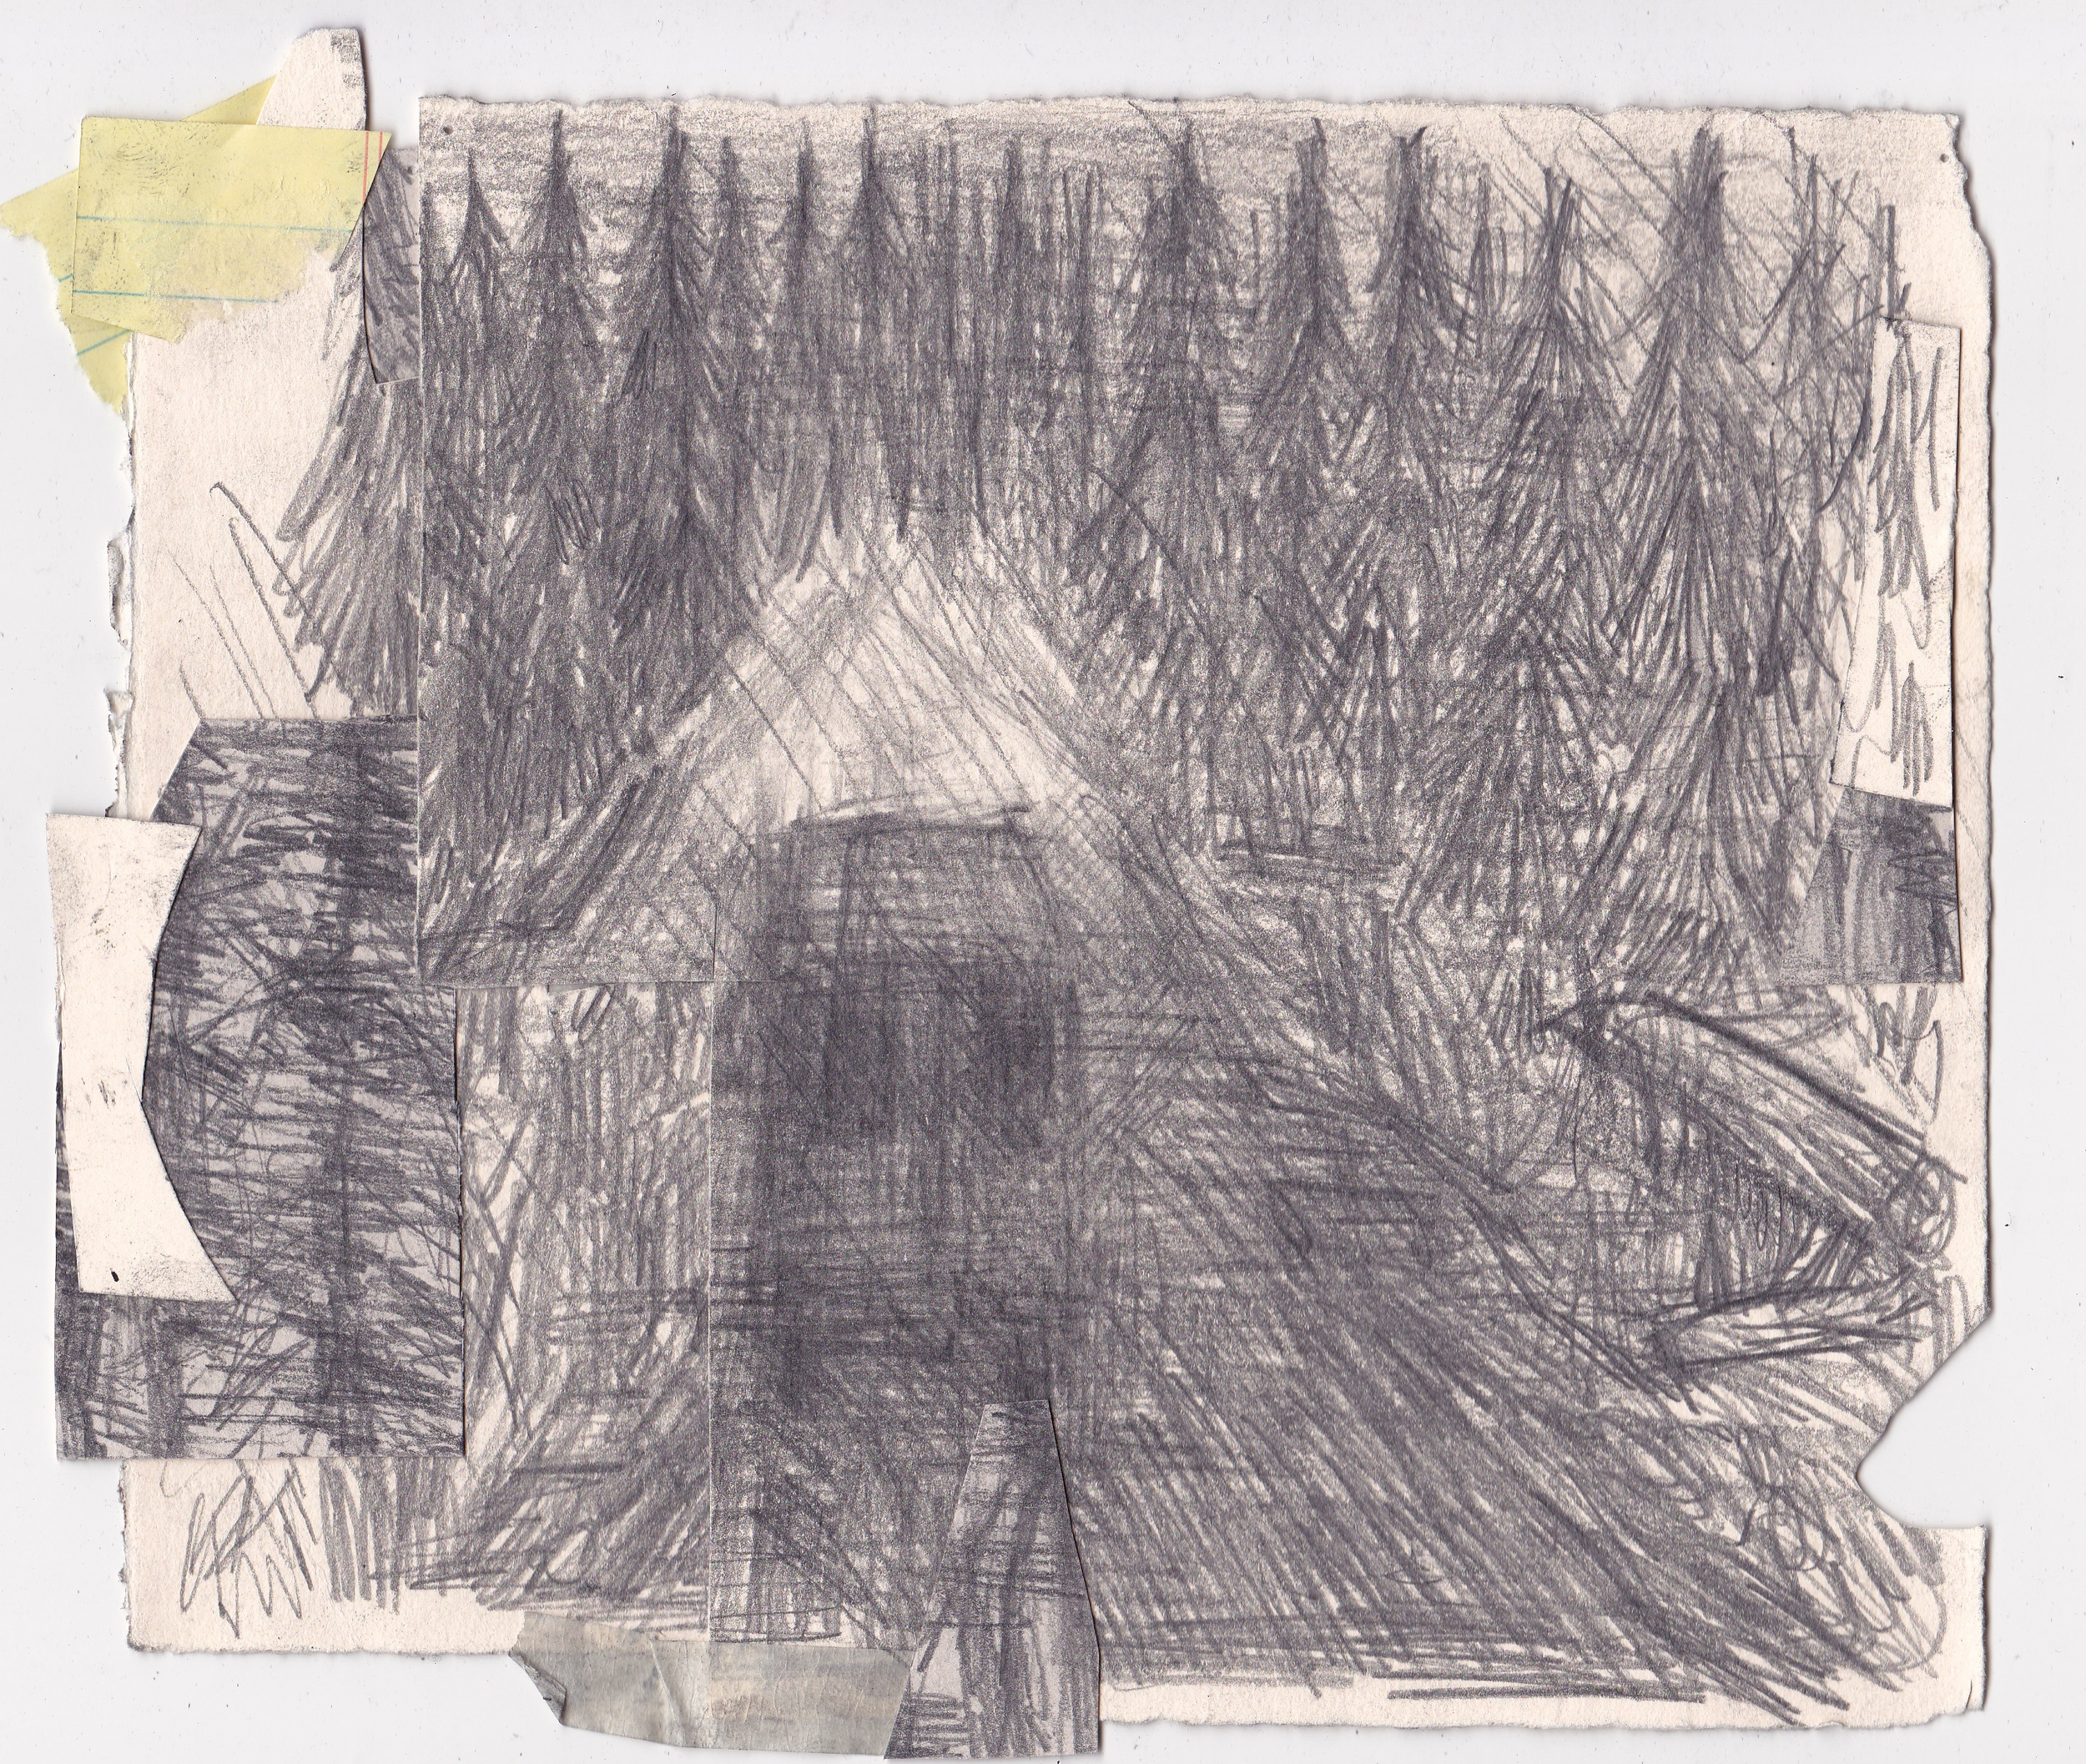 Driving Into the Emptiness, Augury of Lighting the Stove , 2013, graphite on paper, 7.5x9 inches